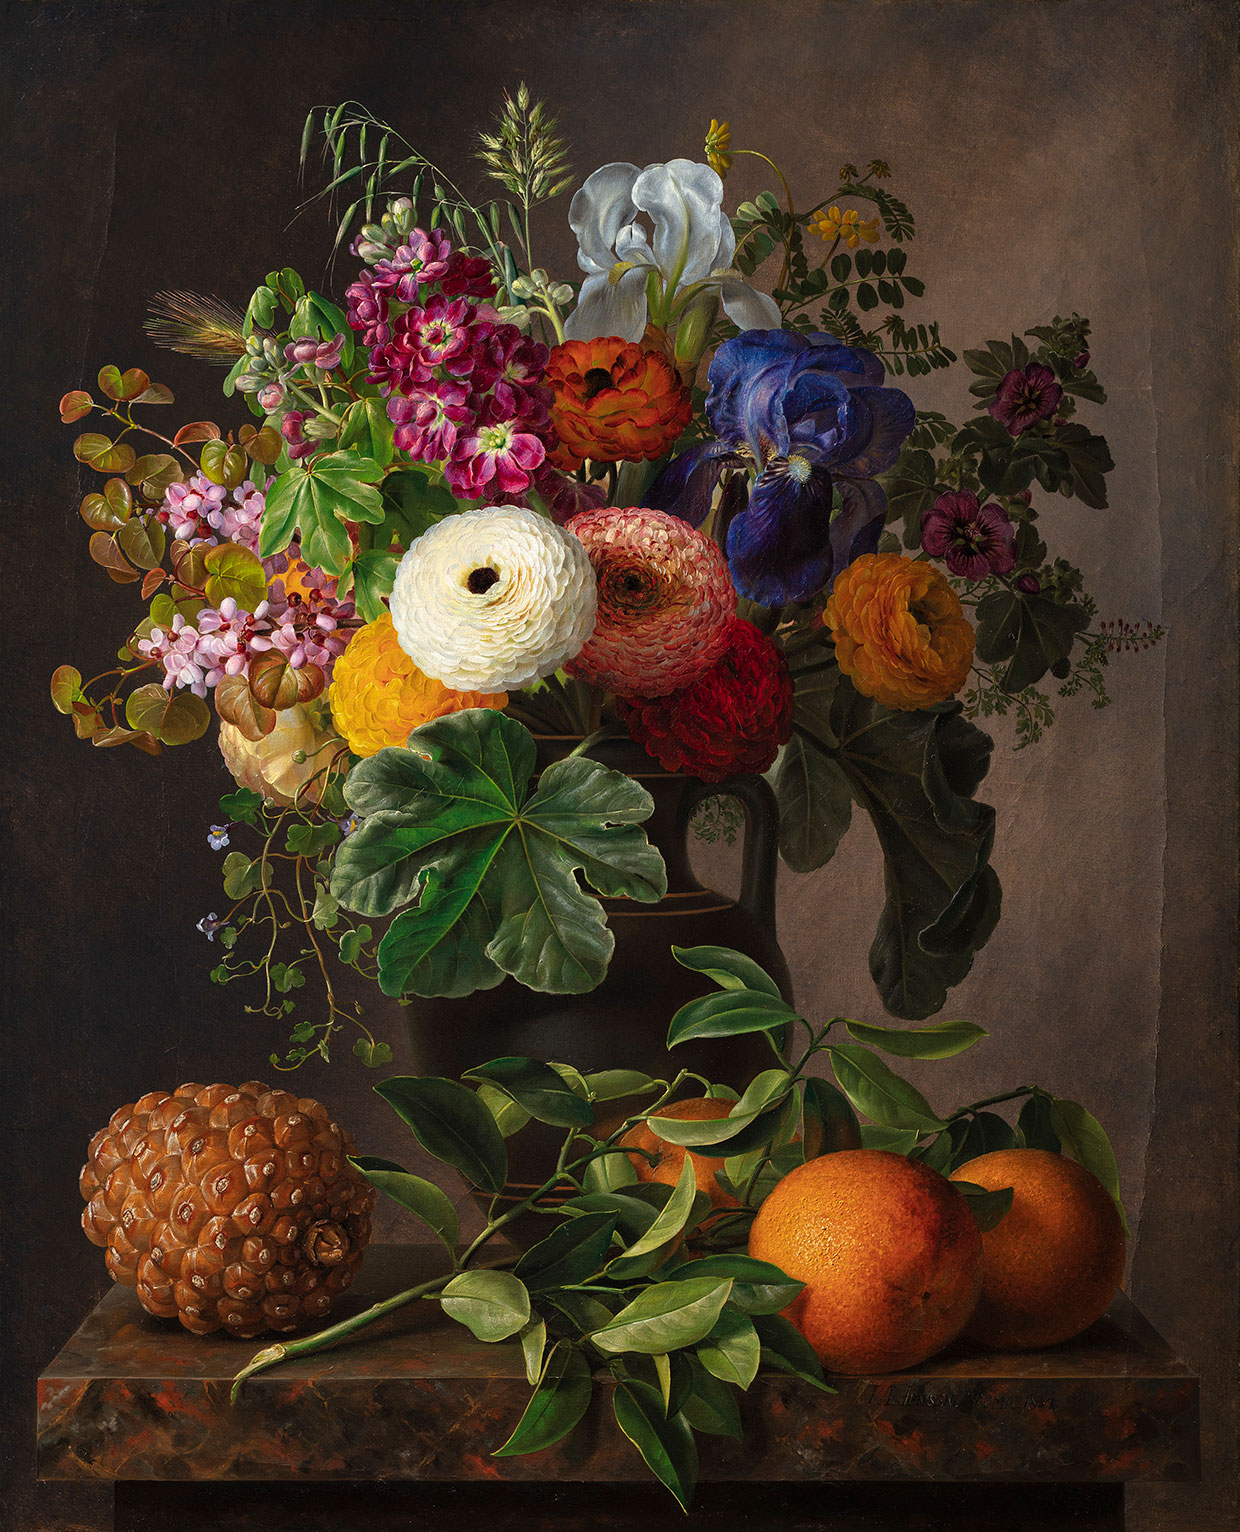 J.L. Jensen, Still Life with Flowers in an Antique Vase on a Marble Tabletop, 1834. Thorvaldsens Museum. Photo: Thorvaldsens Museum